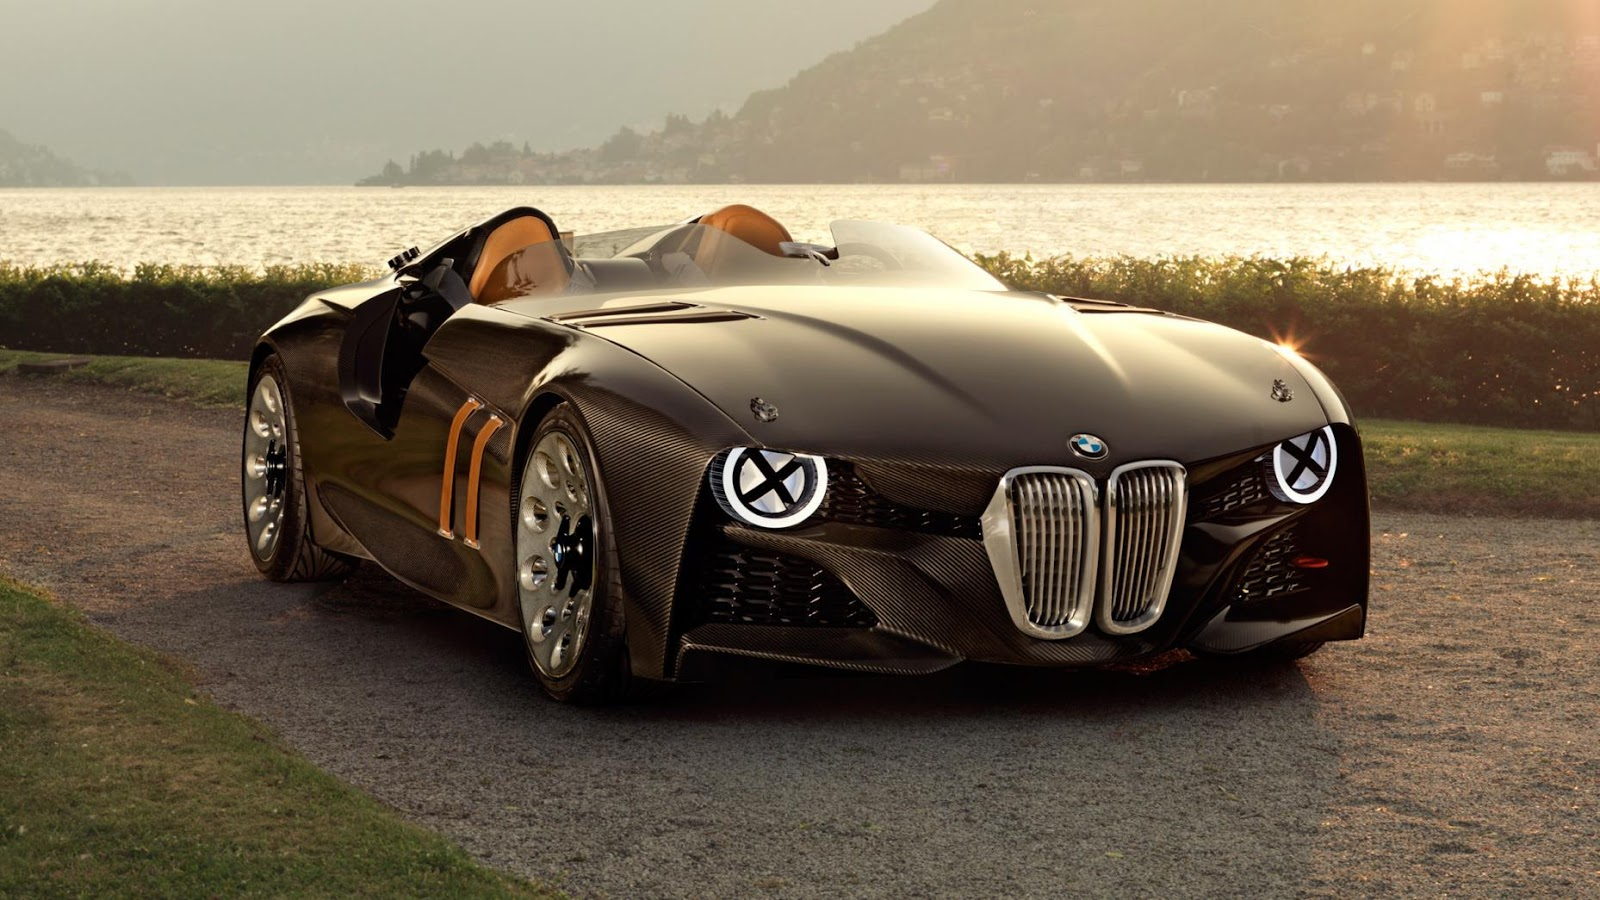 2011: BMW Vision Connected Drive